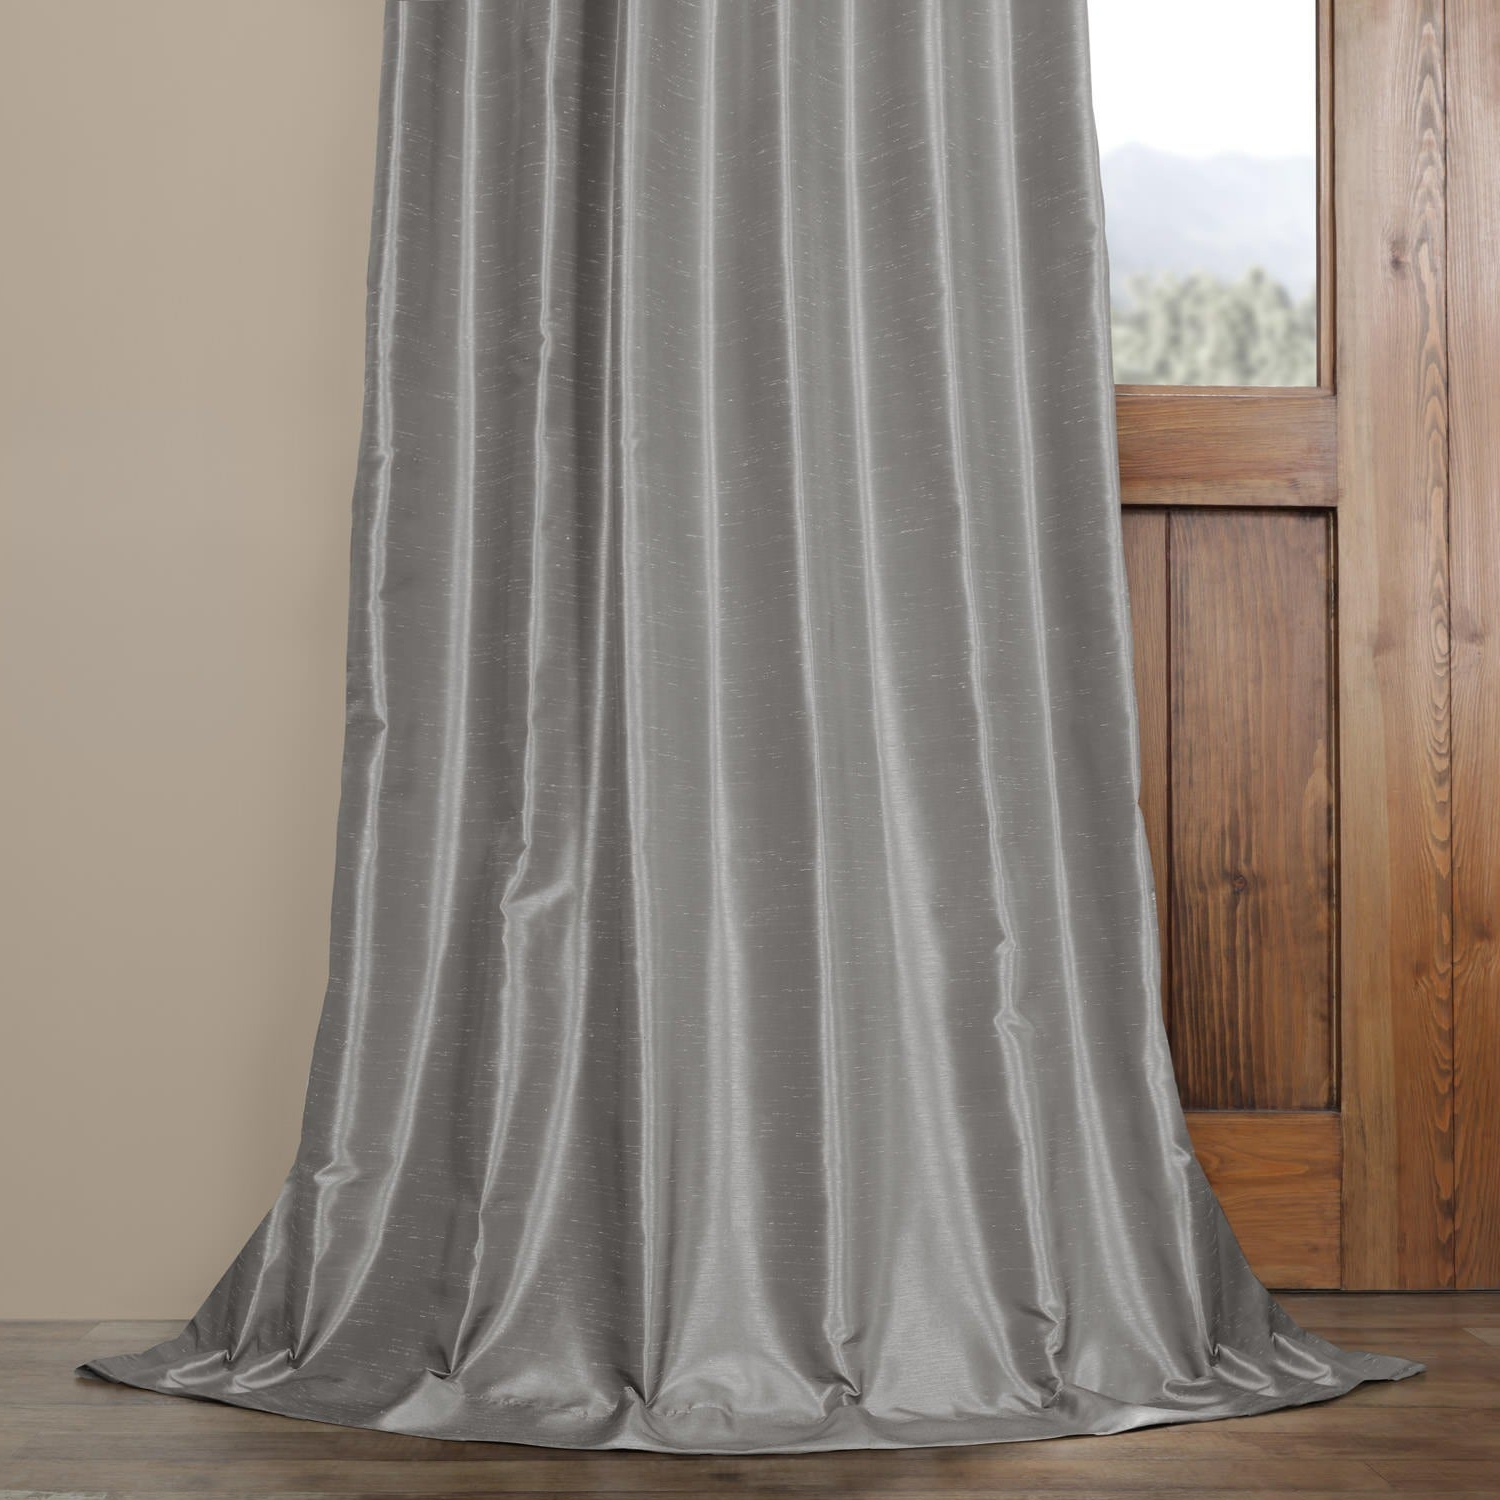 Exclusive Fabrics Silver Vintage Faux Textured Dupioni Silk Curtain Panel With Regard To Fashionable Silver Vintage Faux Textured Silk Curtain Panels (View 3 of 20)